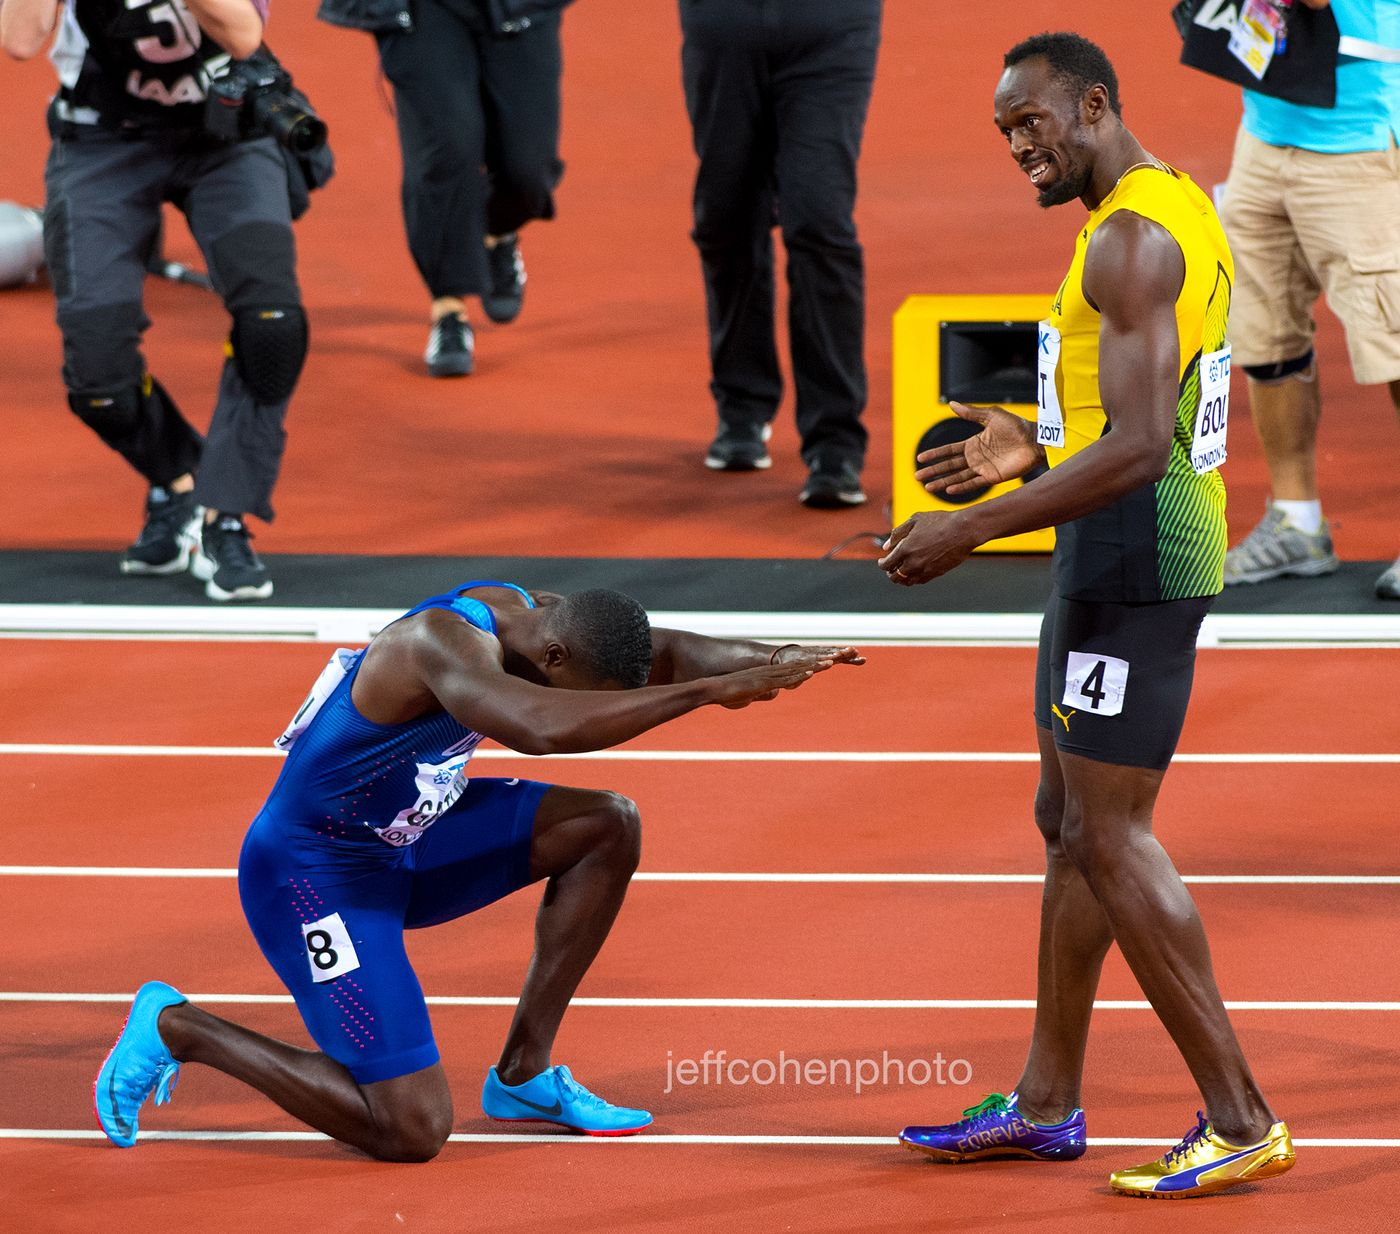 2017-IAAF-WC-London-night2785-2-gatlin-bolt-jeff-cohen-photo---web.jpg